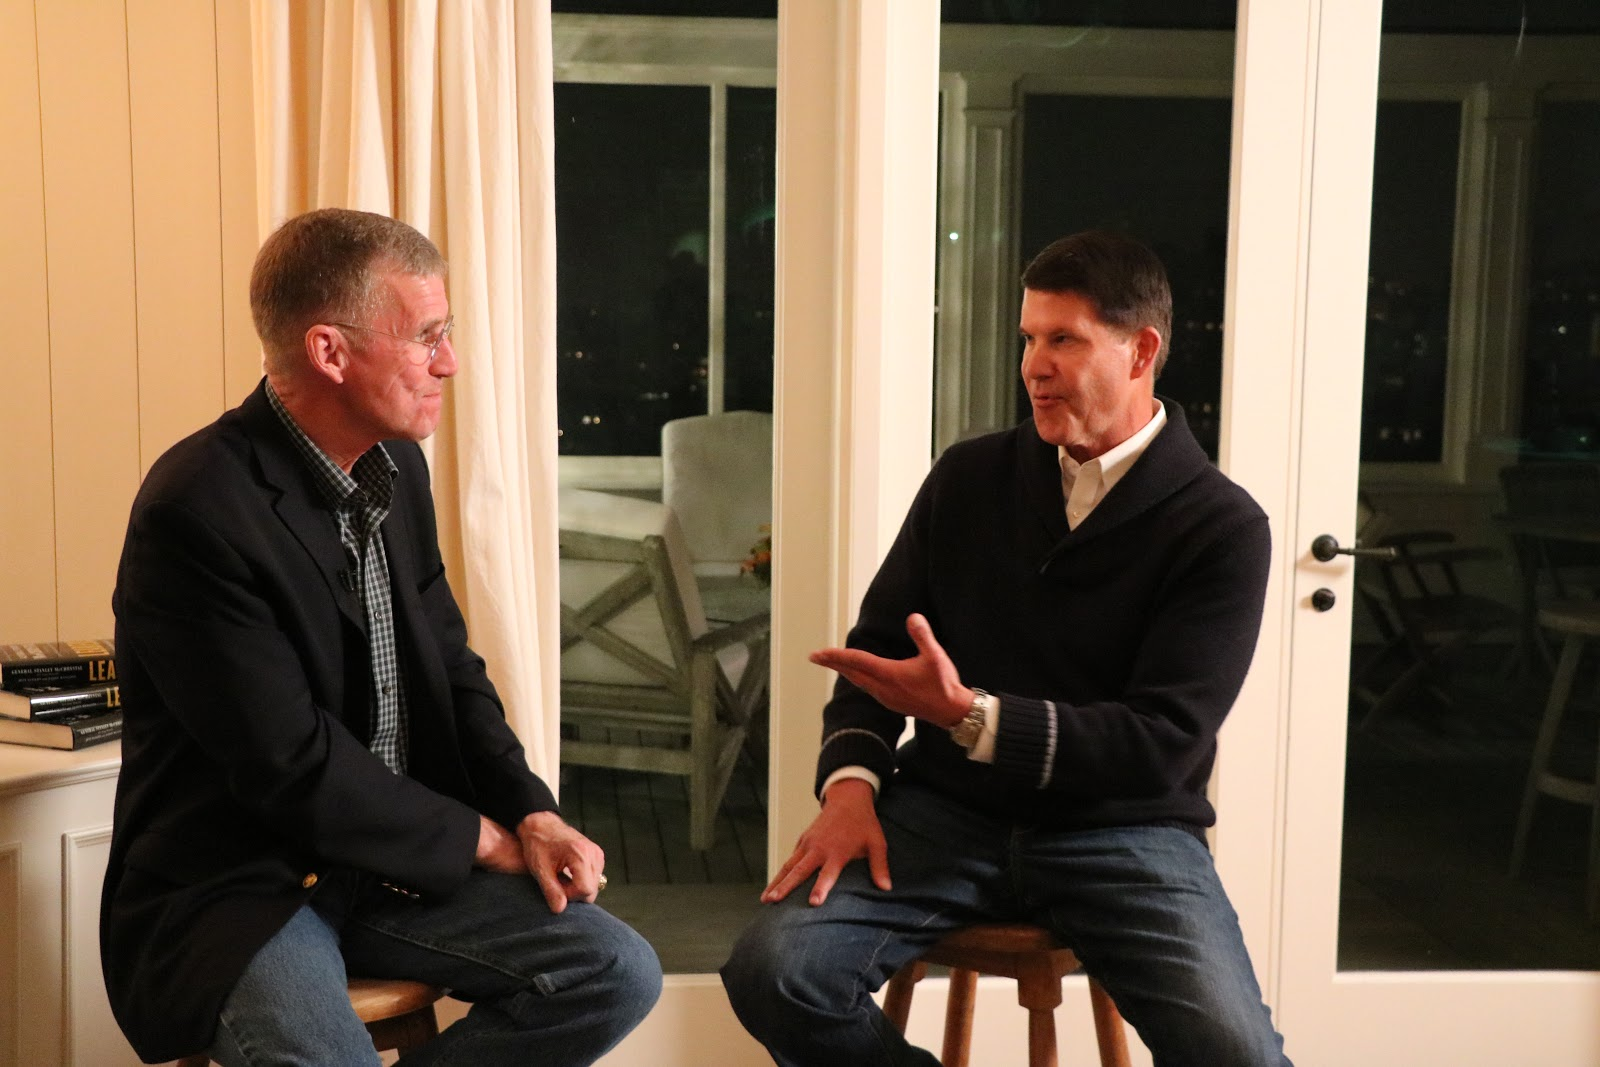 General Stanley McChrystal (left) with Keith Krach at Krach's home in San Francisco